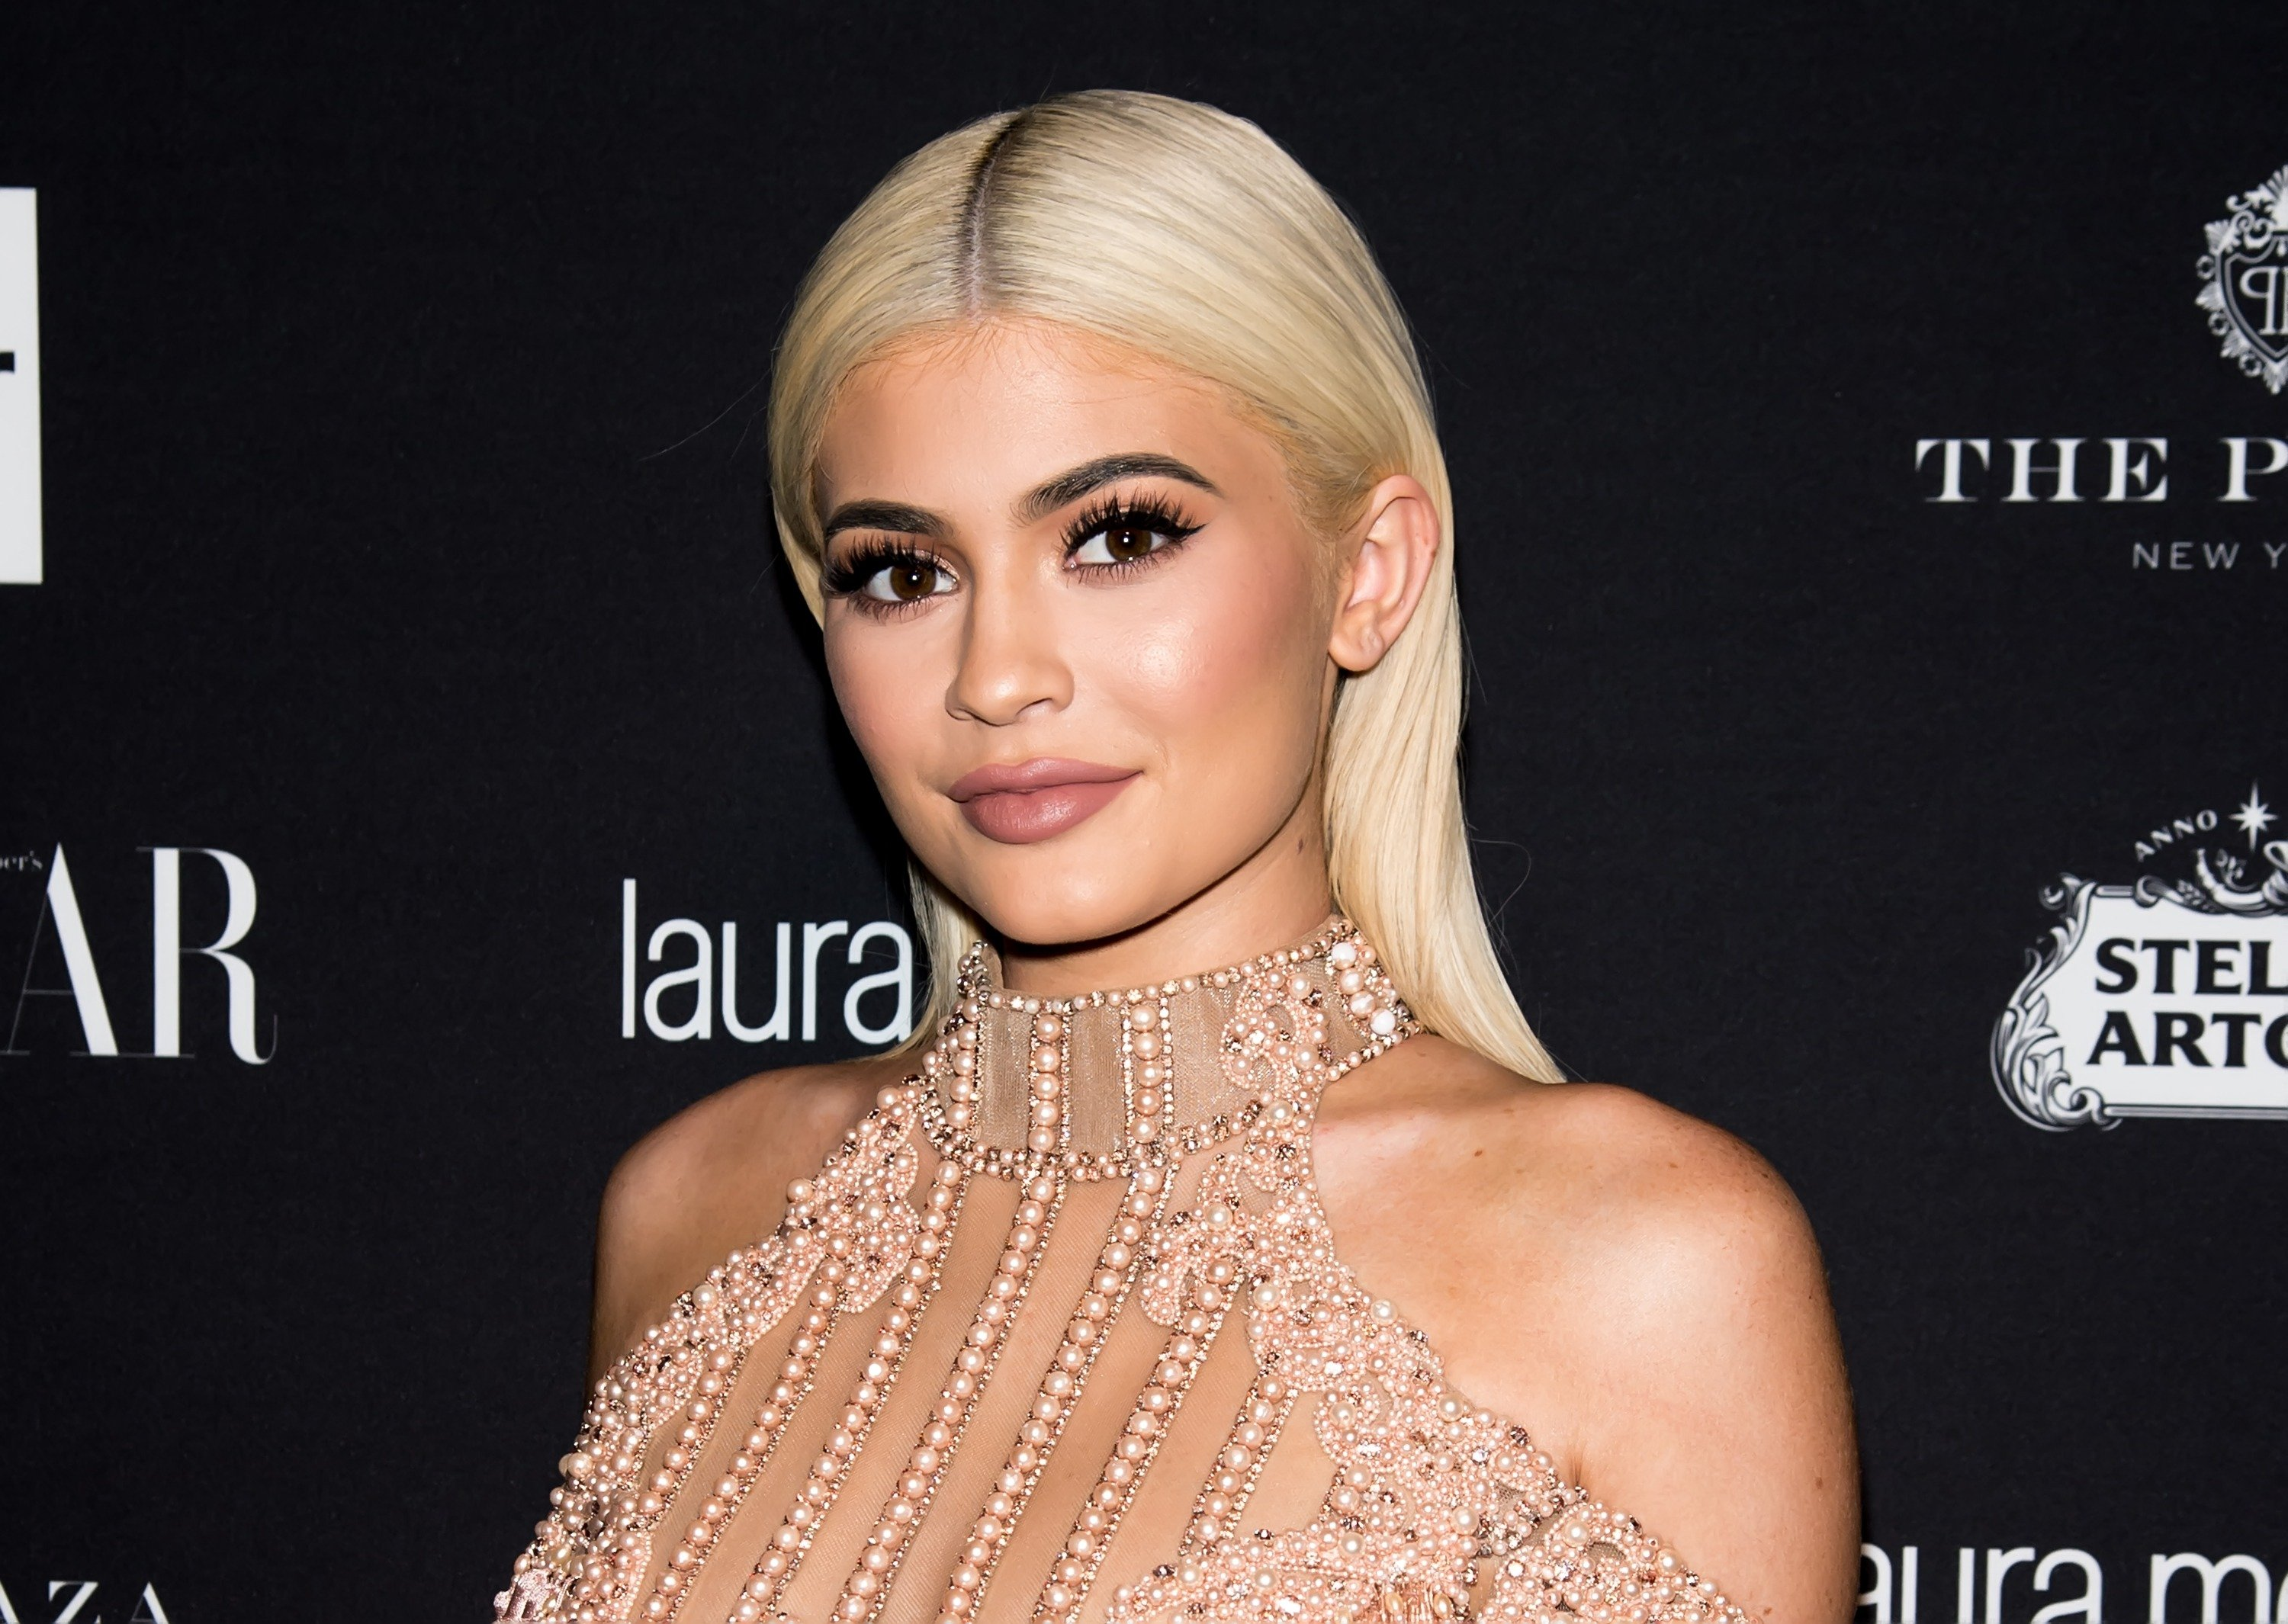 """Kylie Jenner at the Harper's BAZAAR Celebrates """"ICONS"""" event in September 2016.   Photo: Getty Images"""